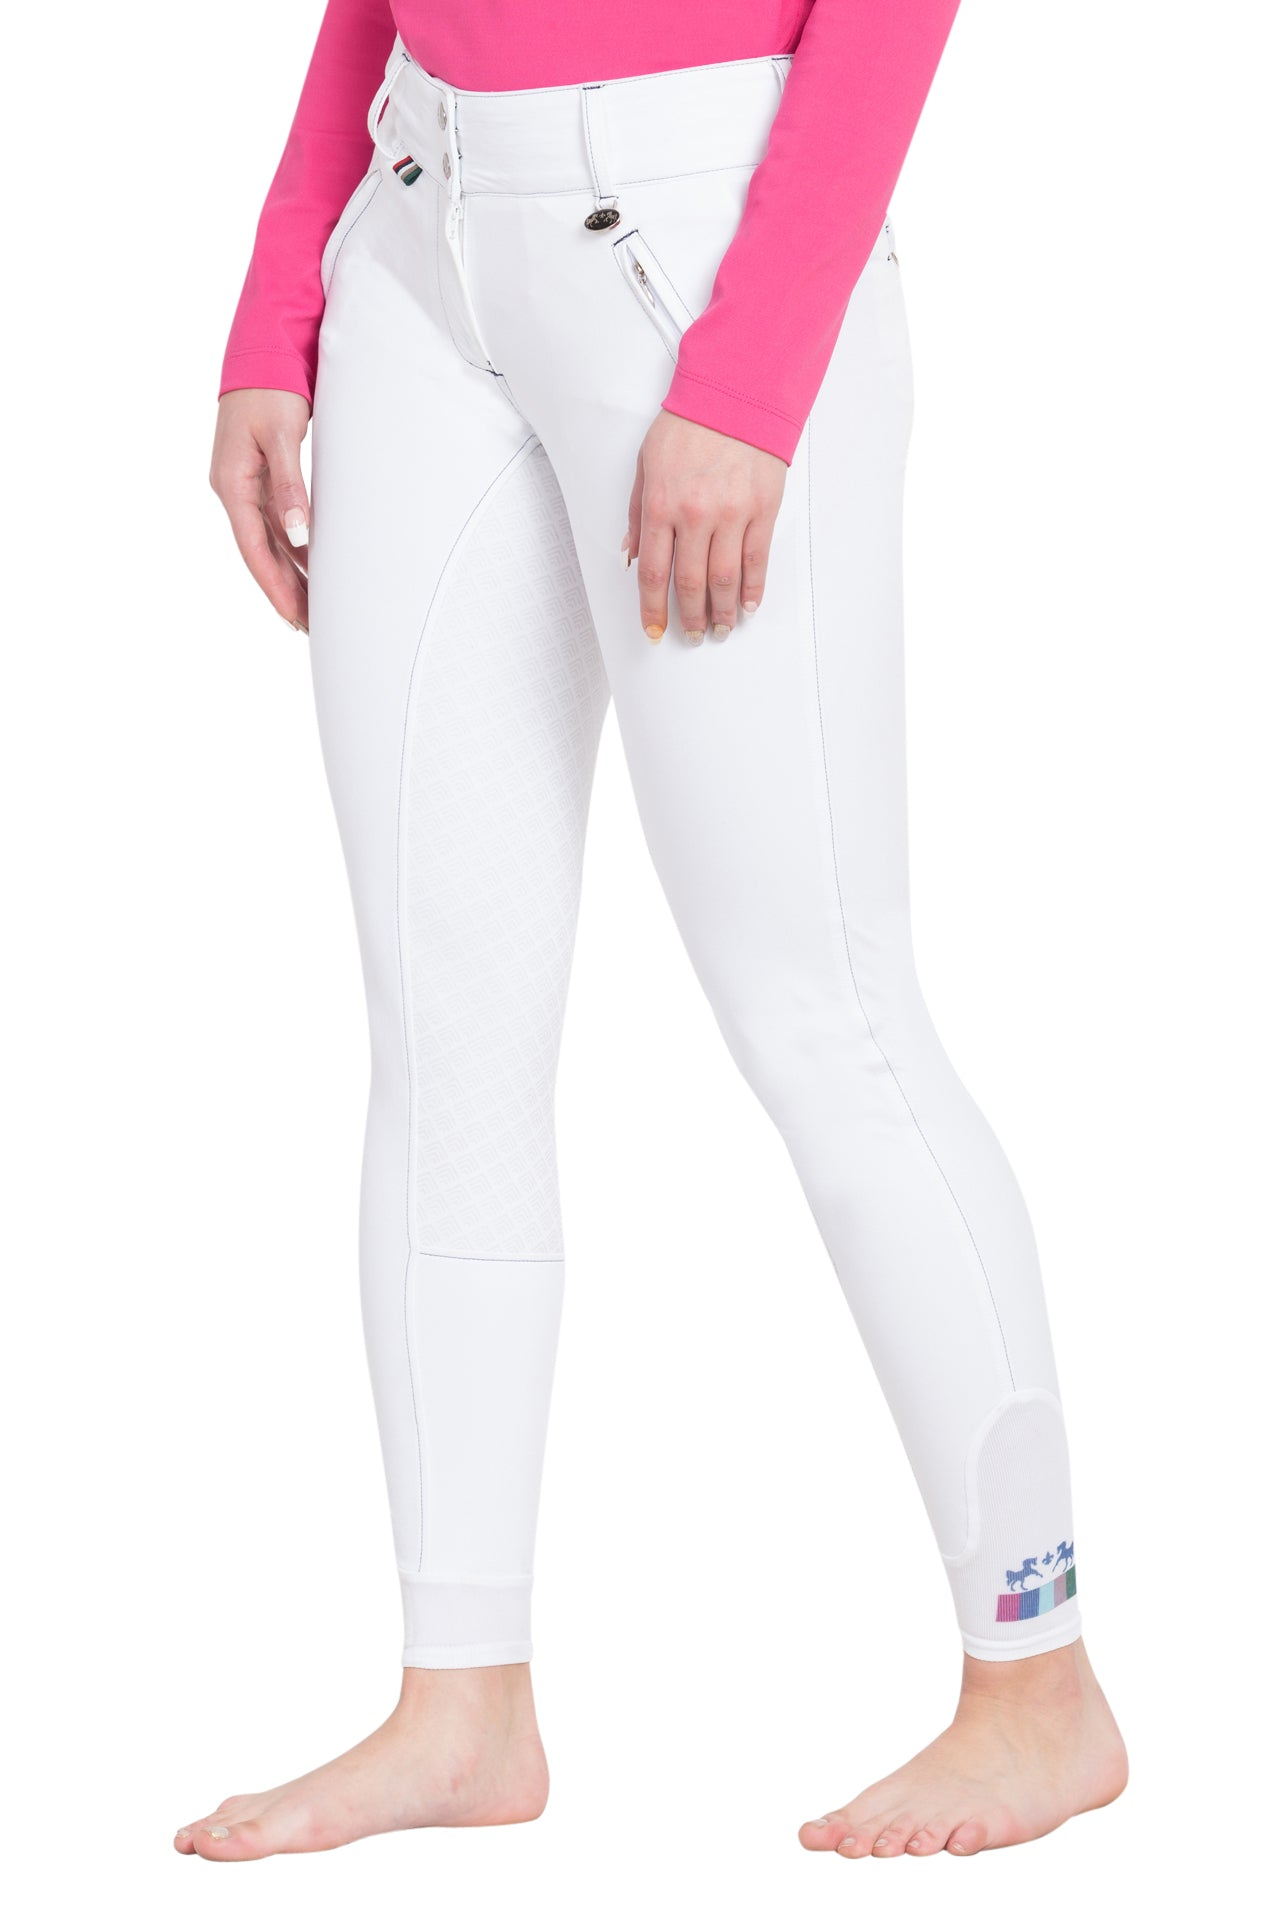 Equine Couture Ladies Brinley Silicone Knee Patch Breeches